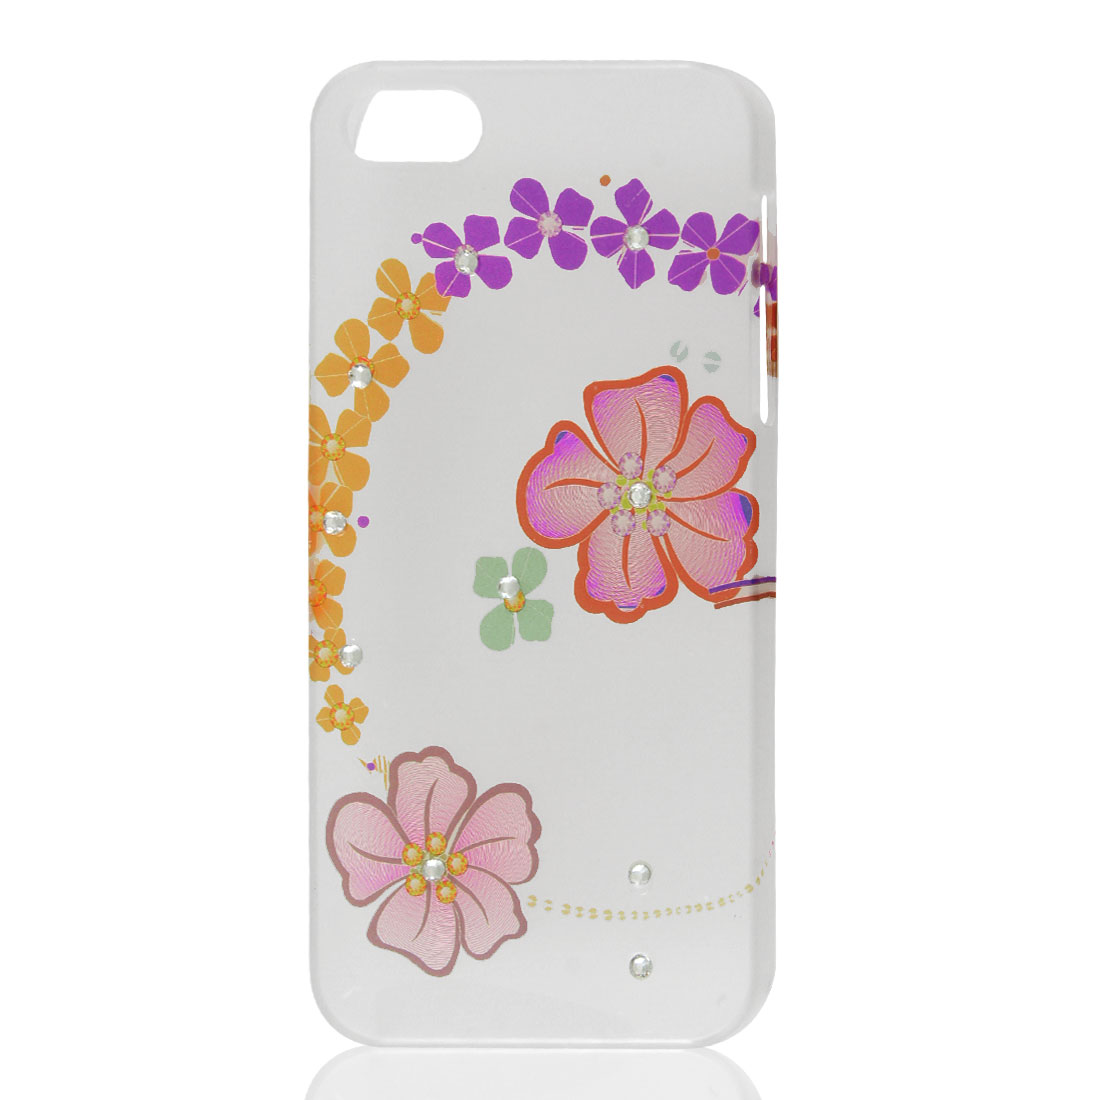 Assorted Color Flower Bling Rhinestone Hard Back Case Cover for iPhone 5 5G